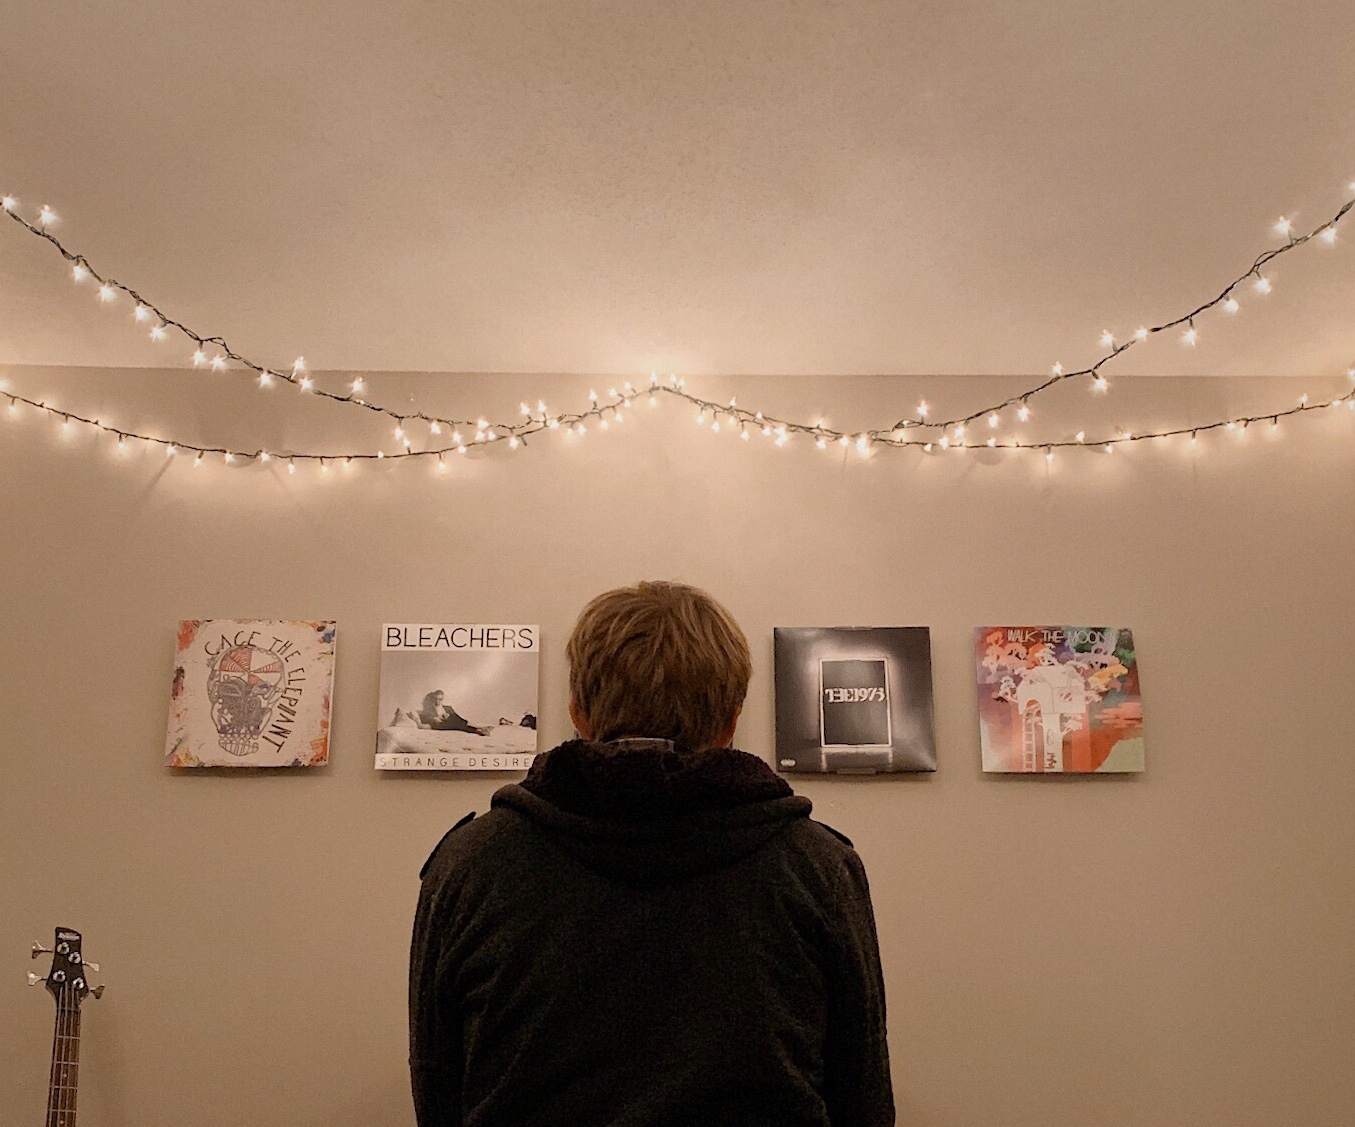 Person viewing four photographs beneath strings of Christmas lights